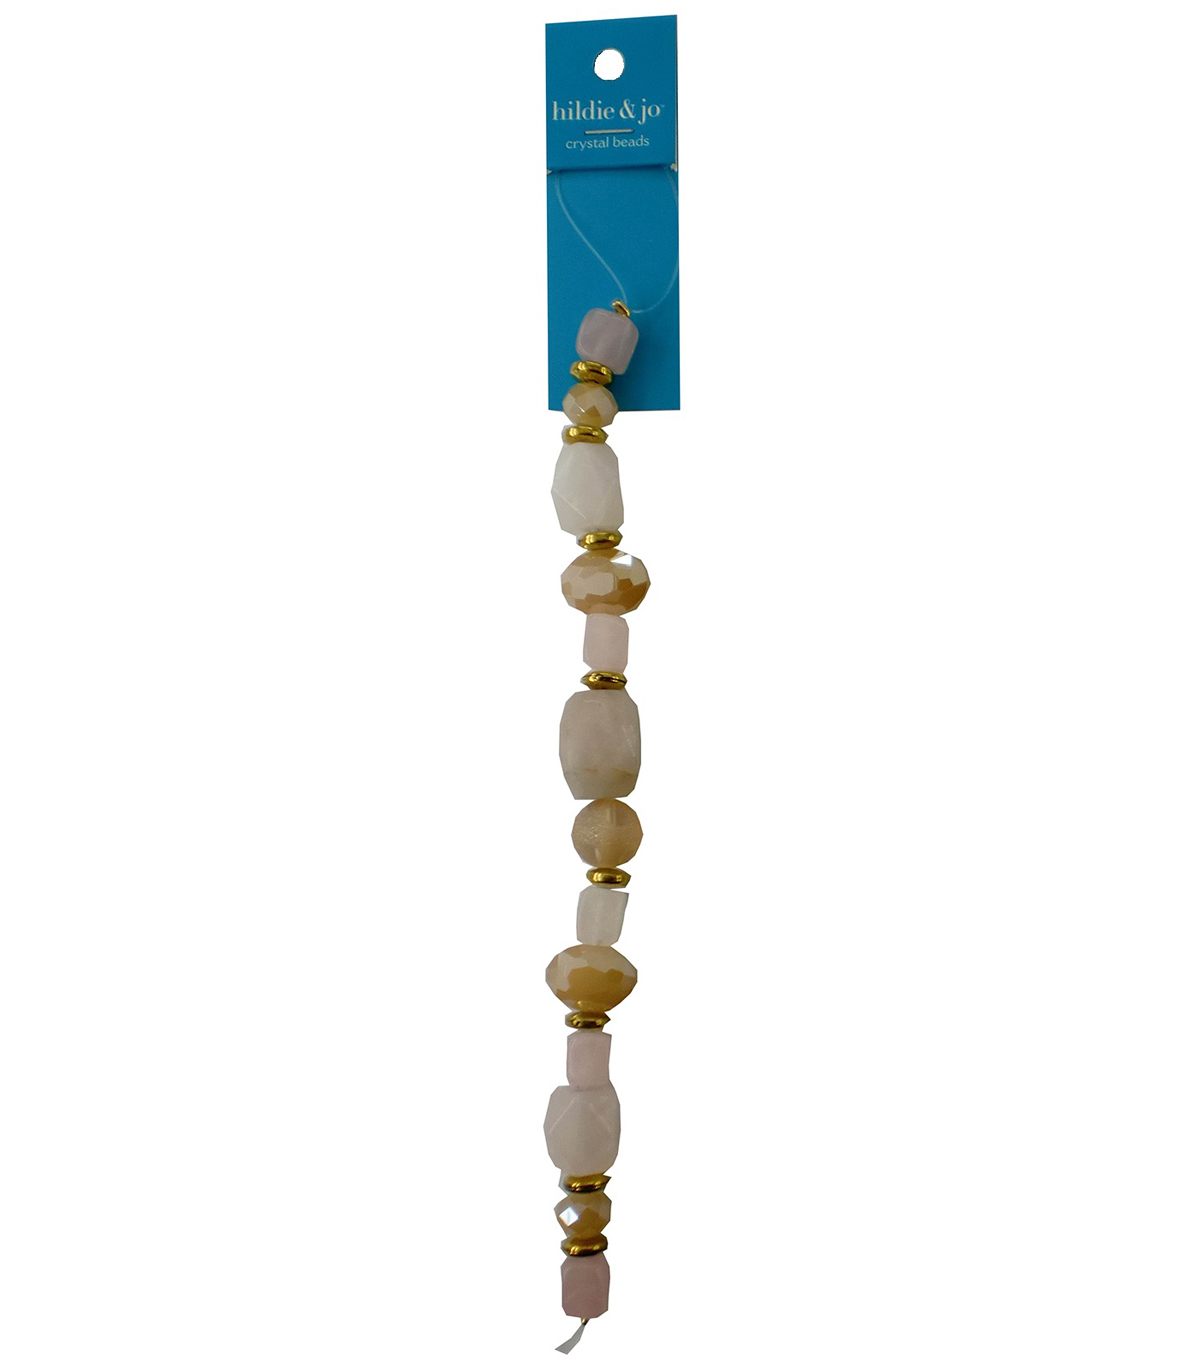 hildie & jo 7\u0027\u0027 Beads Strand with Gold Spacer Beads-Ivory & Tan